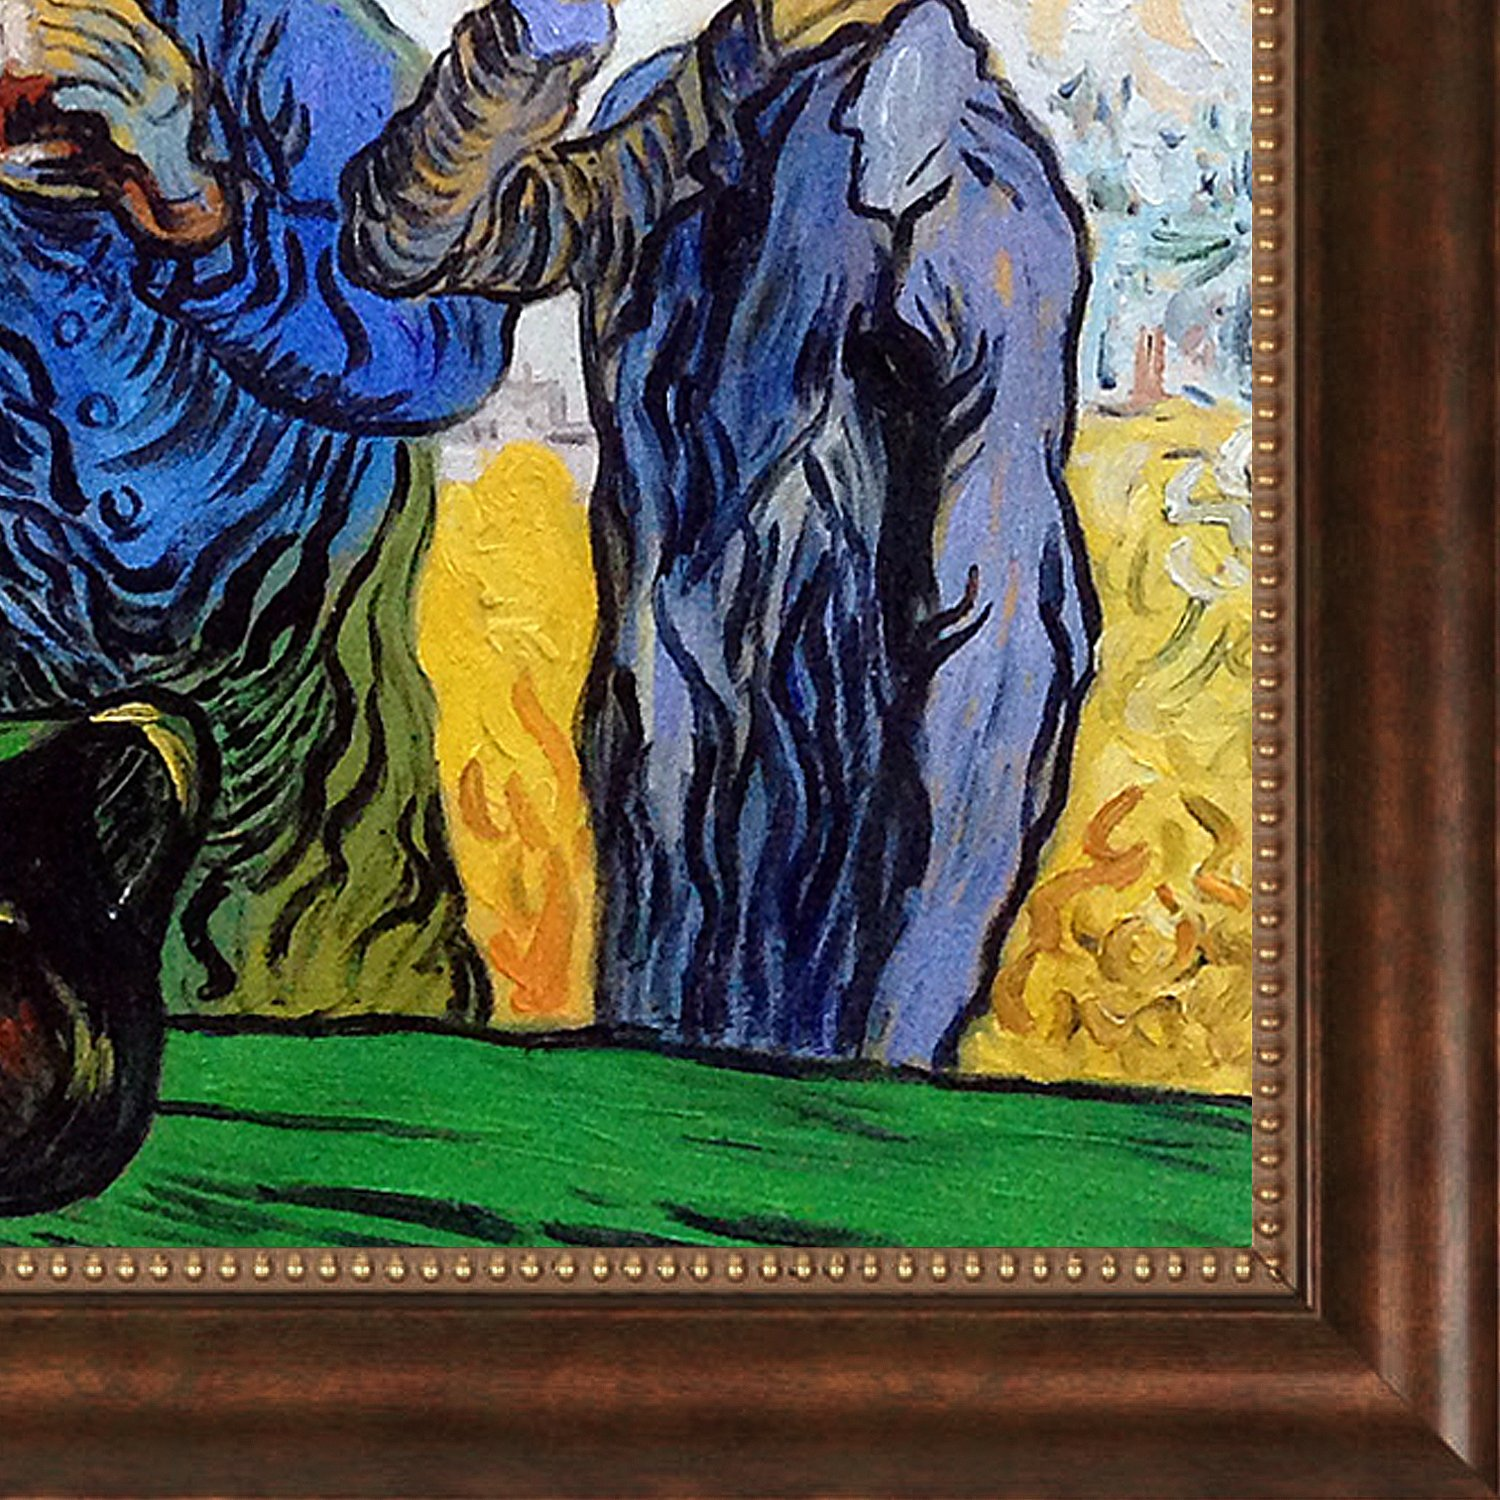 overstockArt The Drinkers After Daumier 1890 by Van Gogh with Verona Cafe Frame